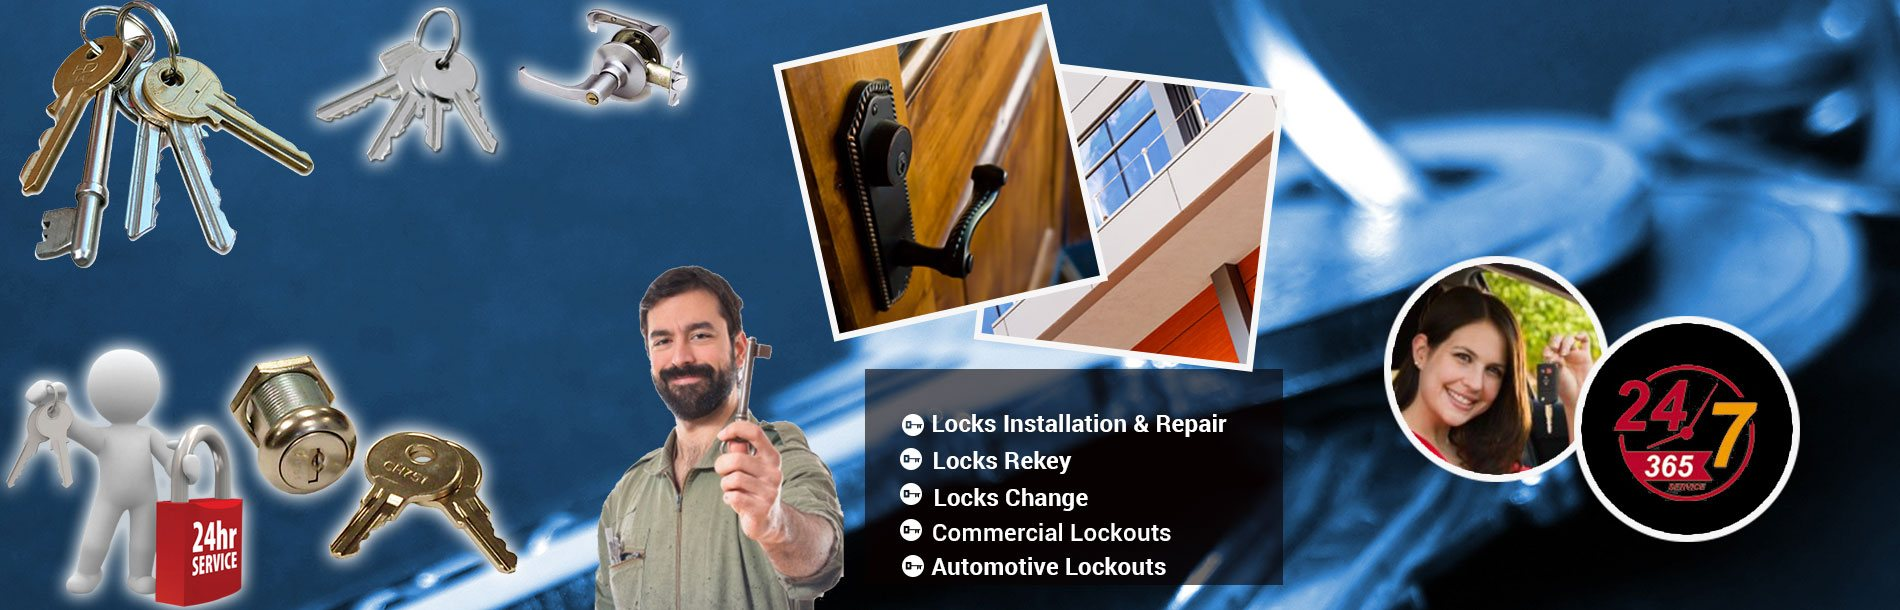 Atlanta Expert Locksmith Atlanta, GA 404-965-0891